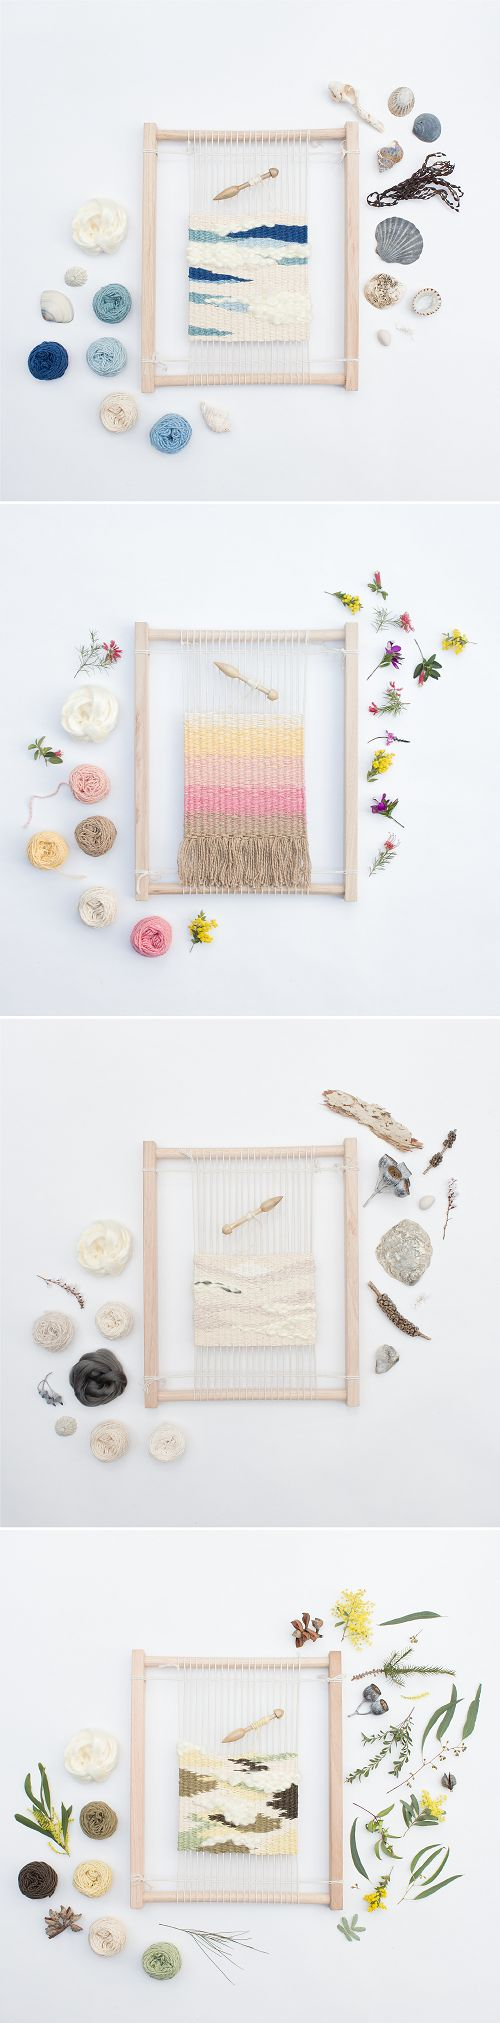 Eco Weaving Kit for beginners by Alchemy. @rruuubbyy